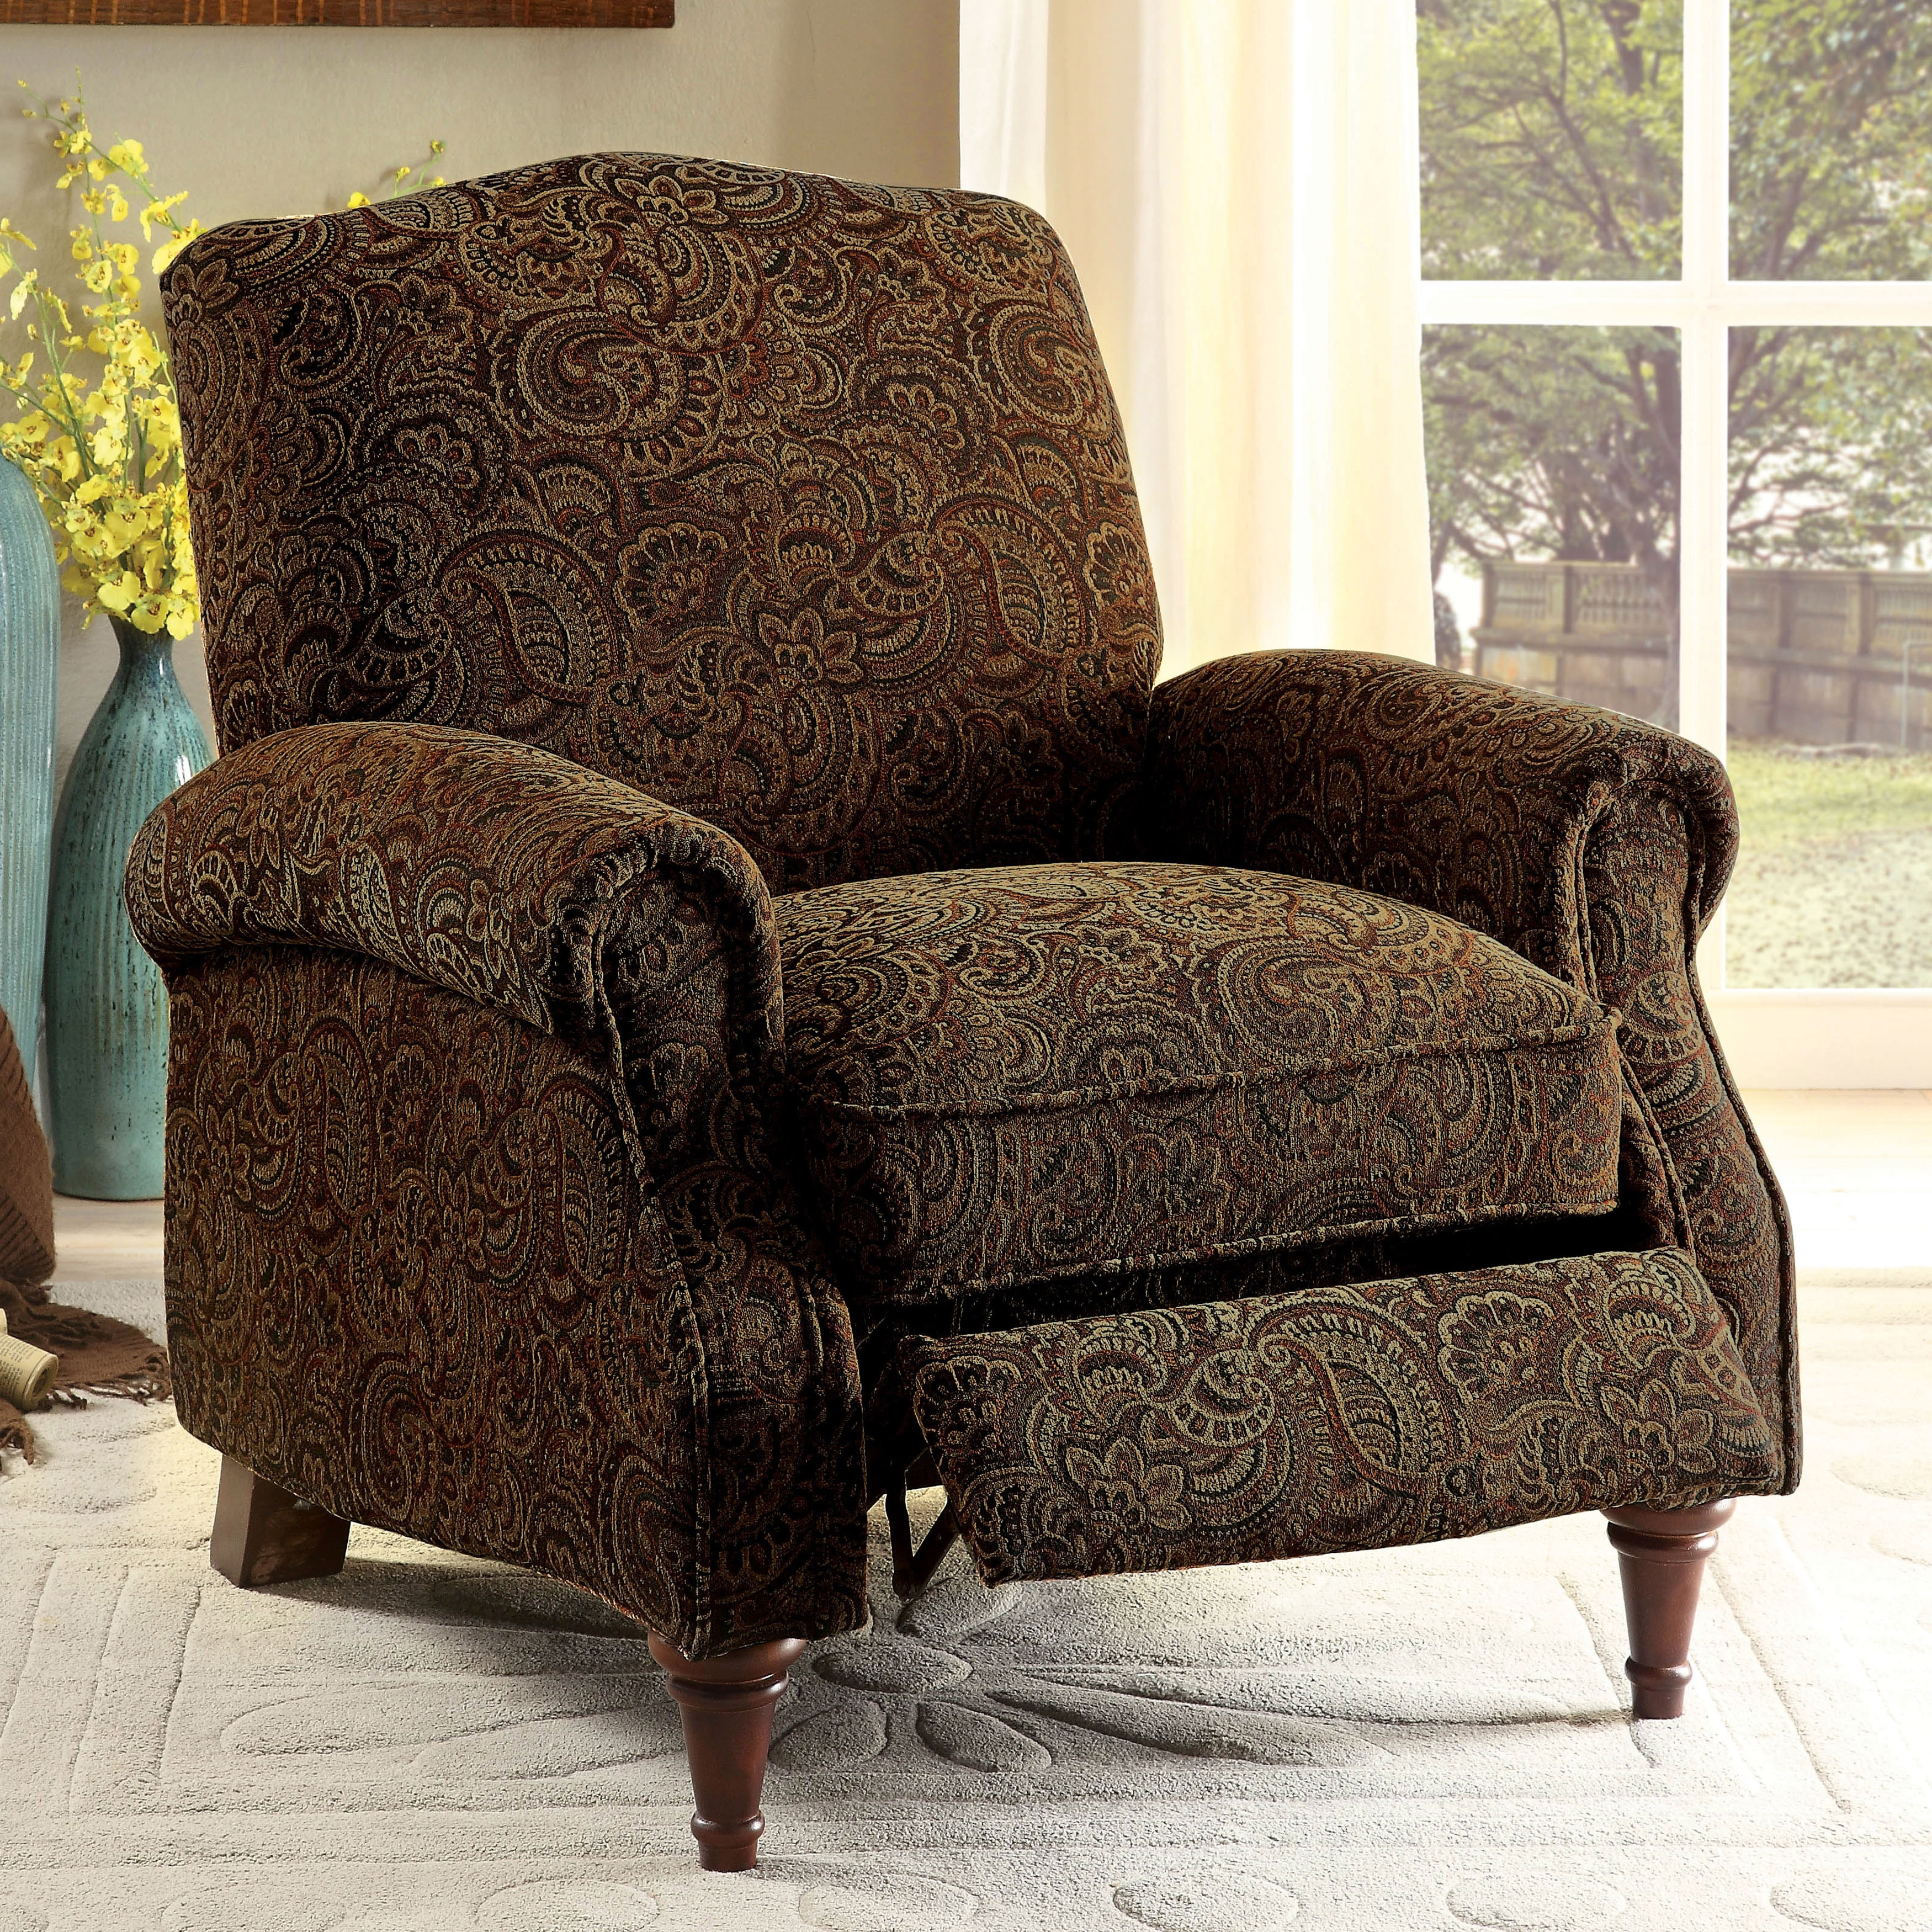 Shop furniture of america vargo paisley brown push back recliner chair free shipping today overstock com 13767755